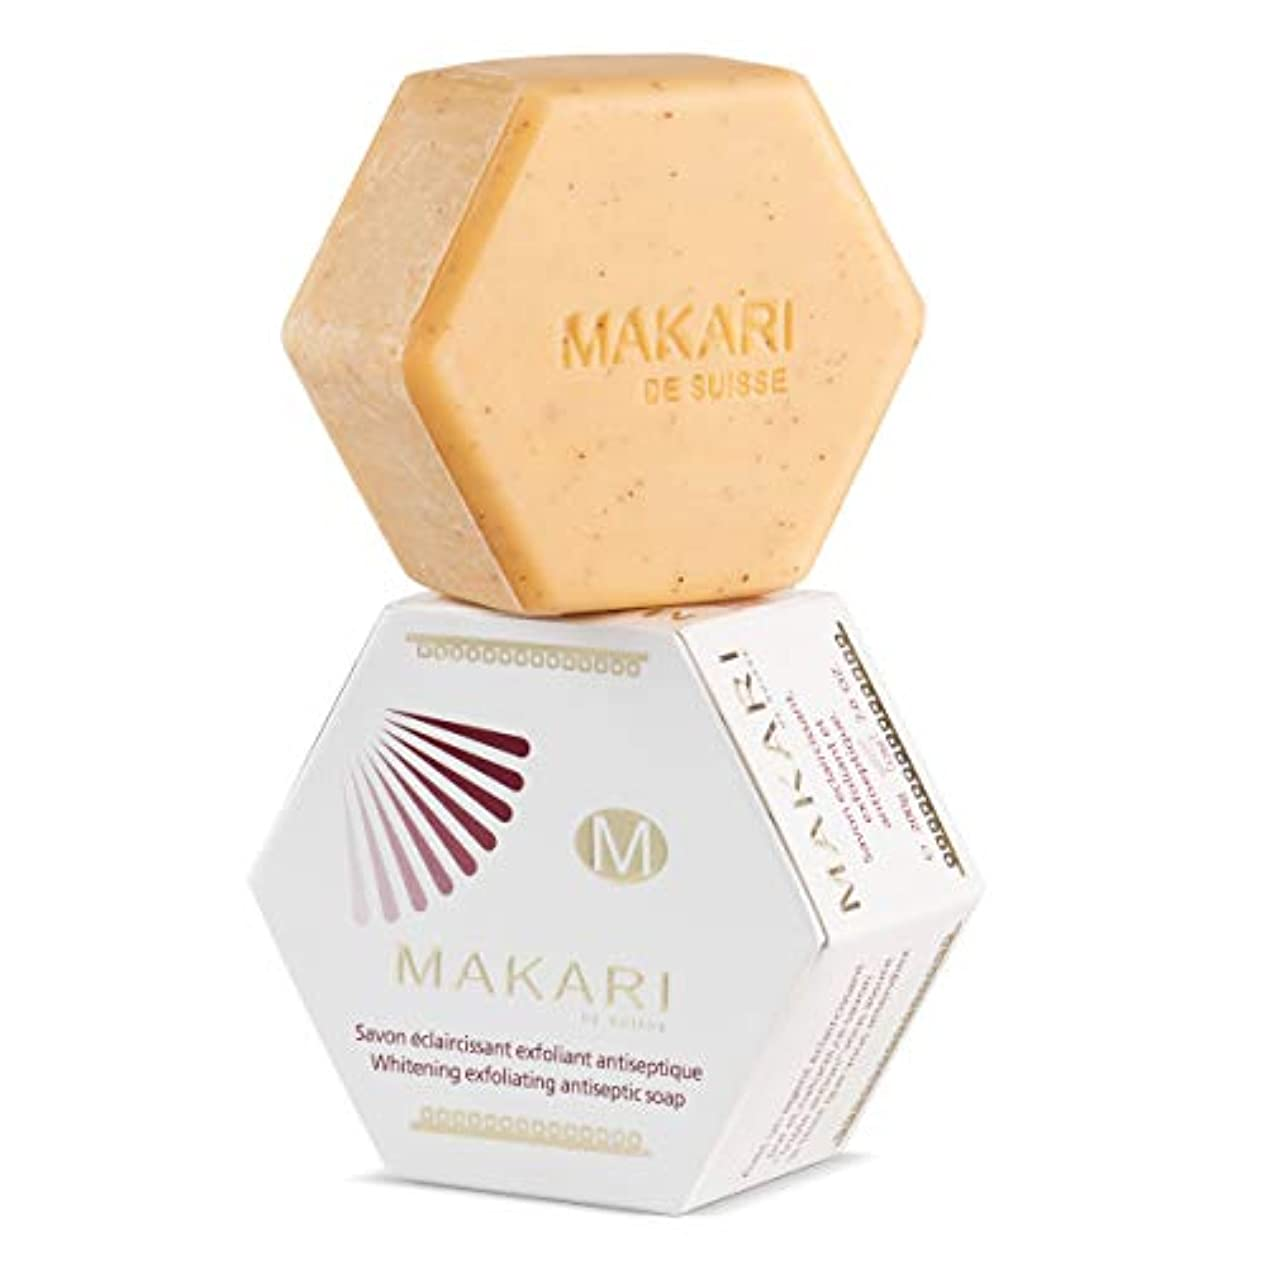 ドライブ長方形セッションMAKARI Classic Whitening Exfoliating Antiseptic Soap 7 Oz.– Cleansing & Moisturizing Bar Soap For Face & Body...